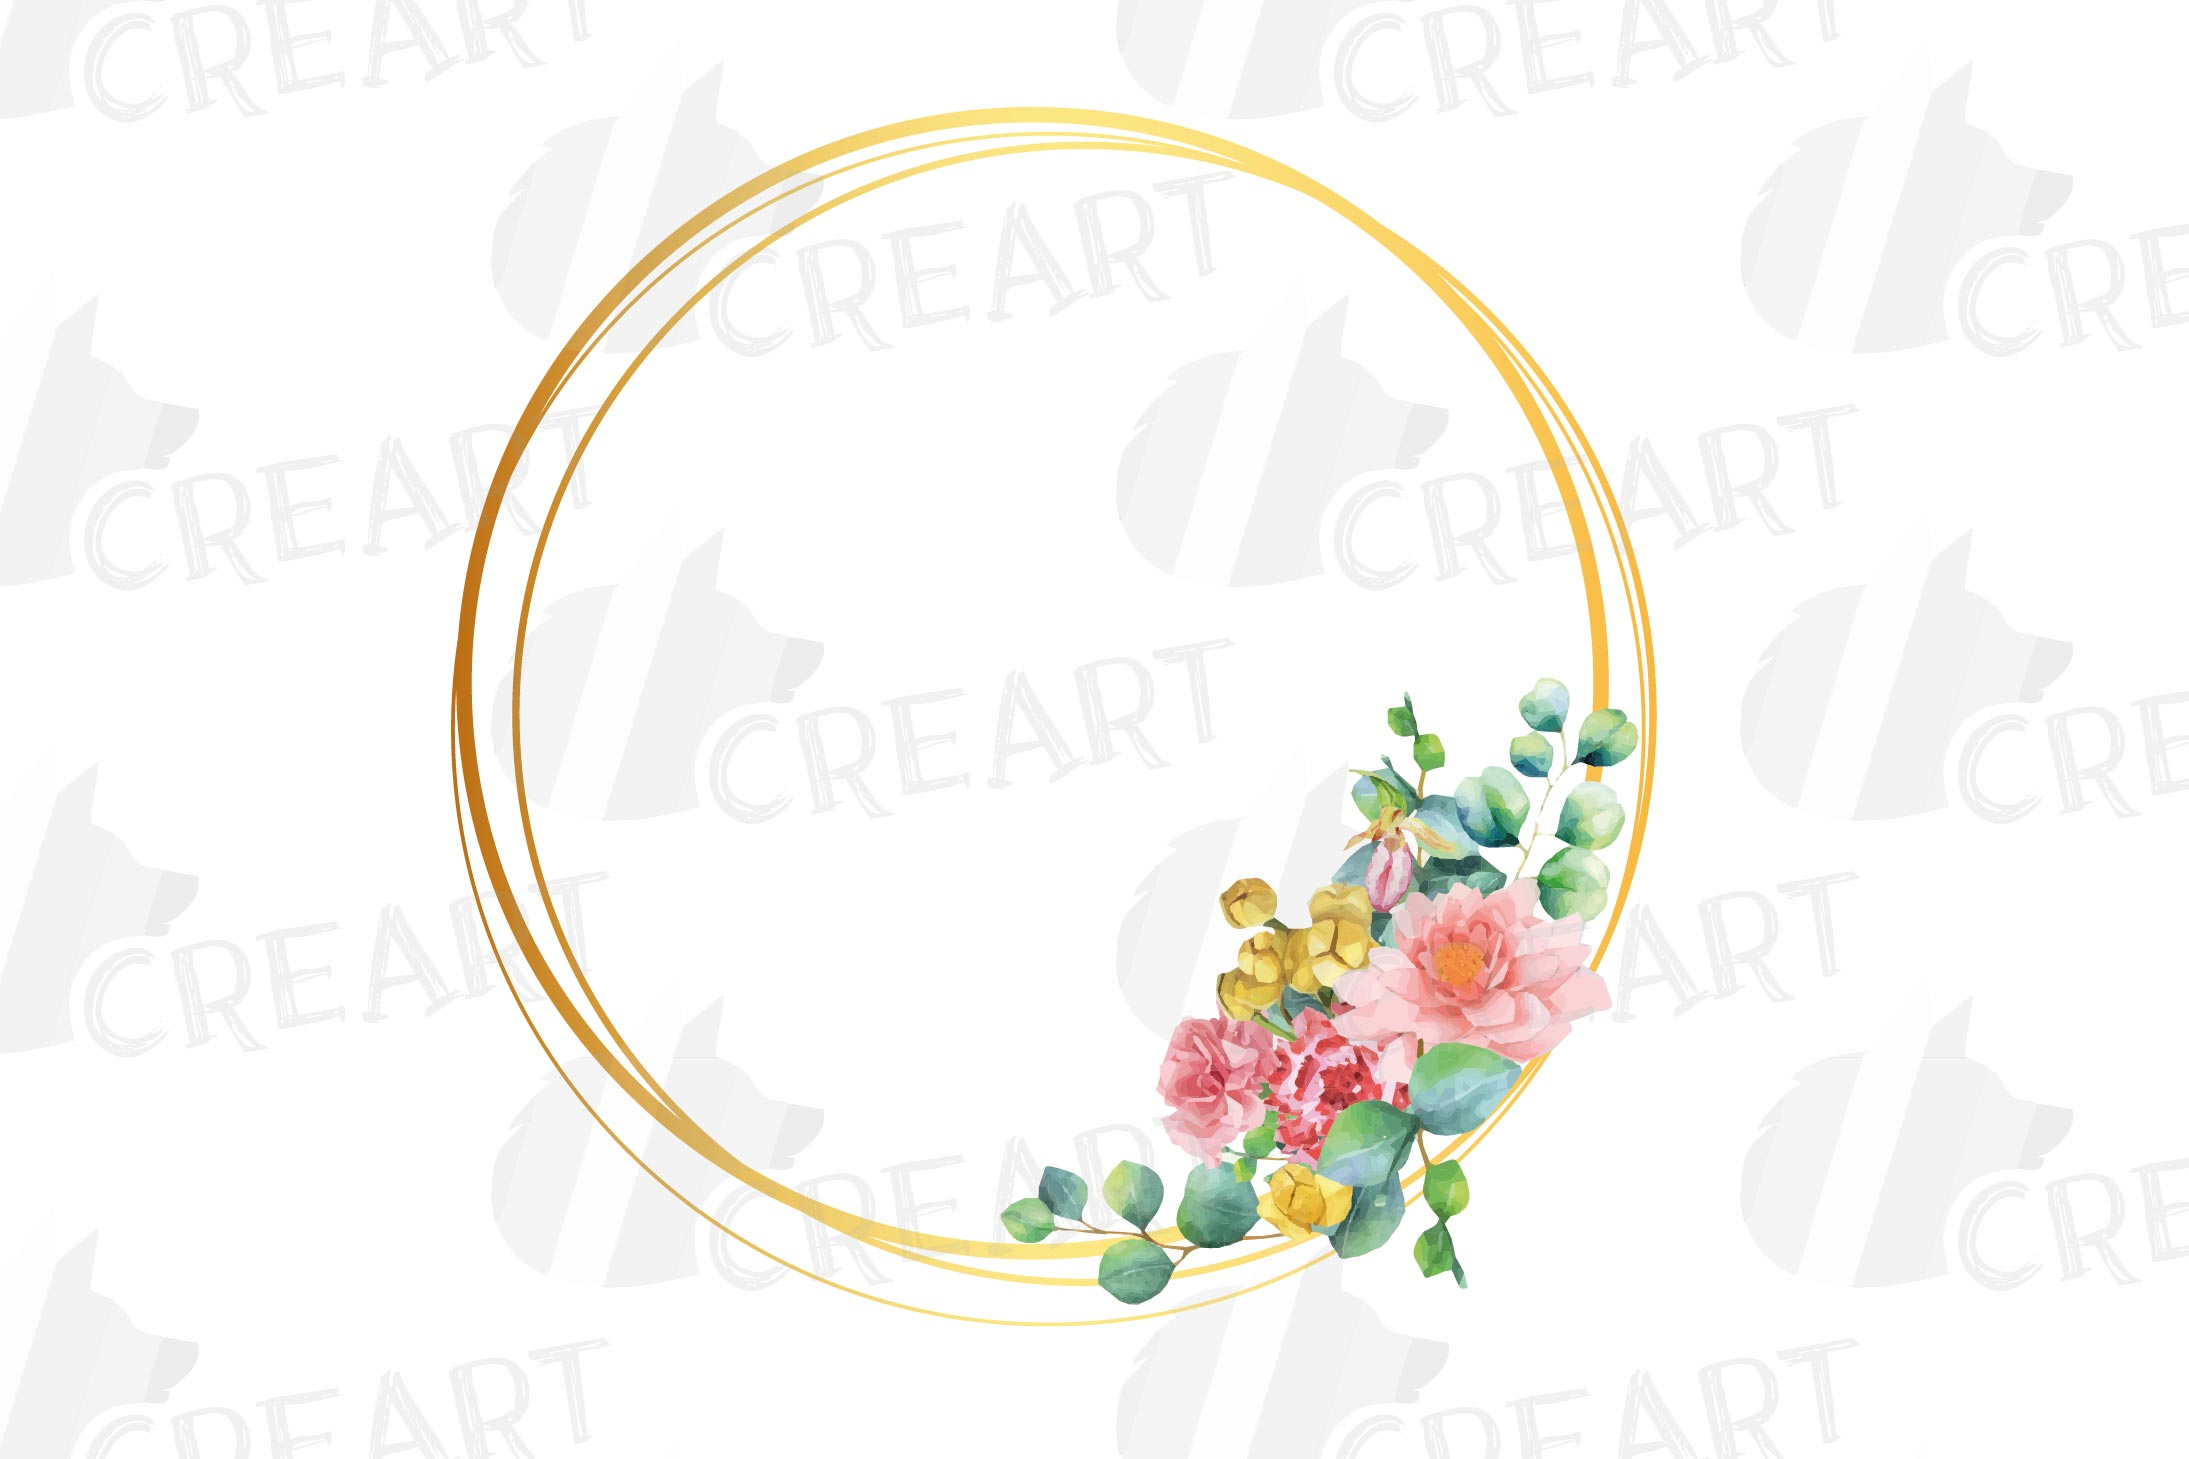 Watercolor floral golden frames and borders clip art pack example image 14